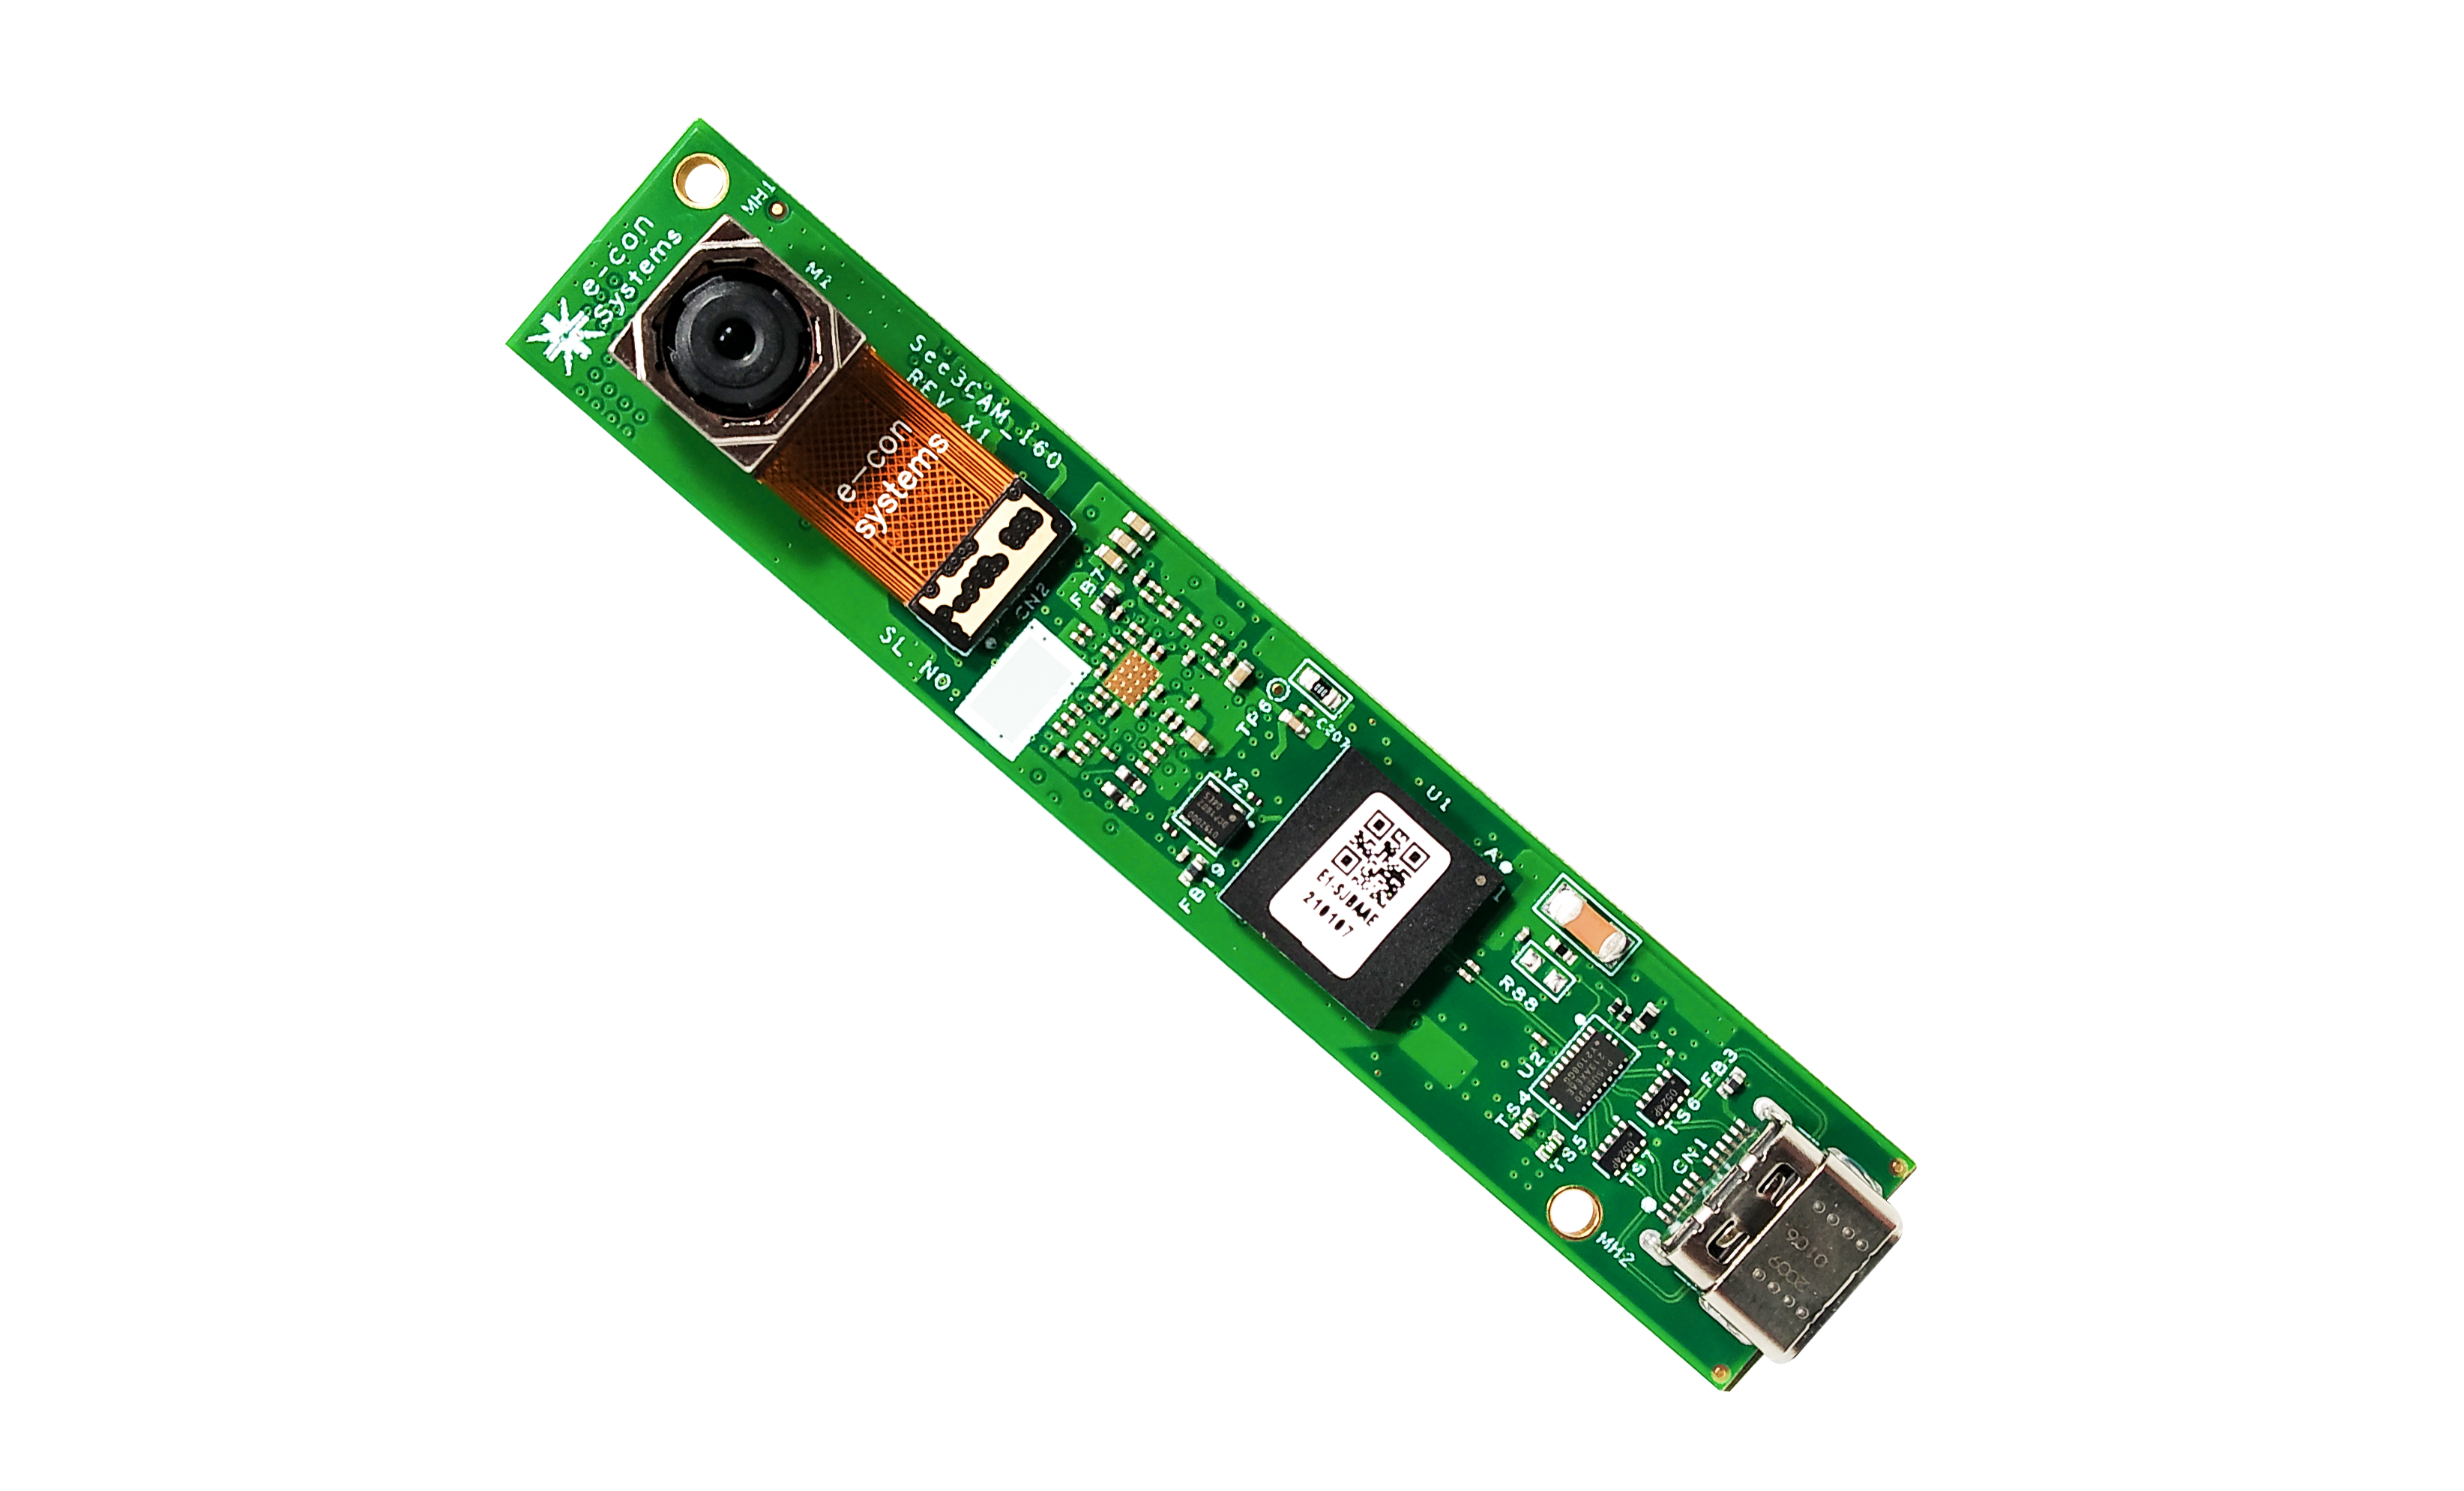 e-con Systems launches 16 Megapixel Autofocus USB3 Camera based on SONY IMX298